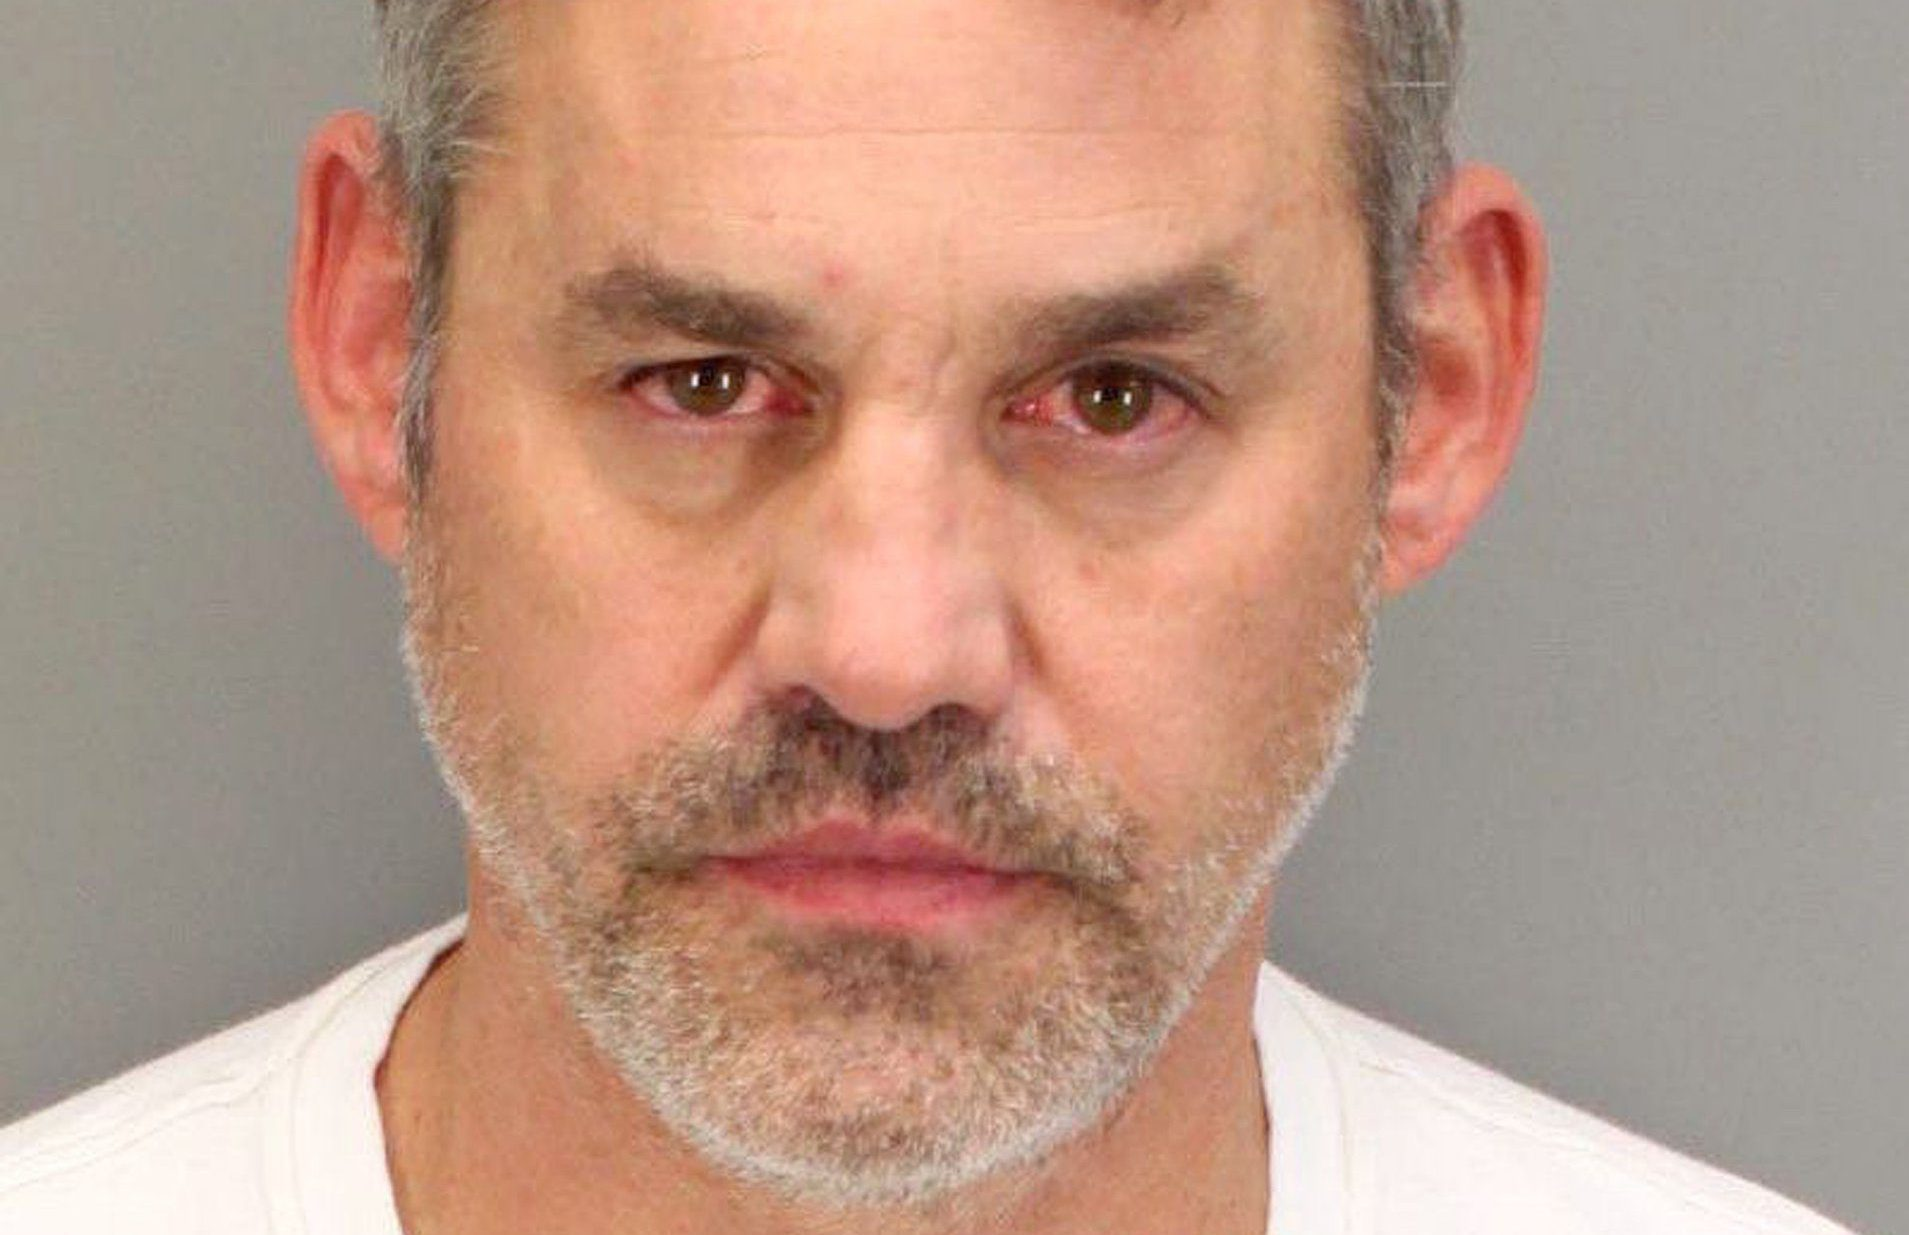 Buffy The Vampire Slayer actor Nicholas Brendon arrested for domestic violence against girlfriend